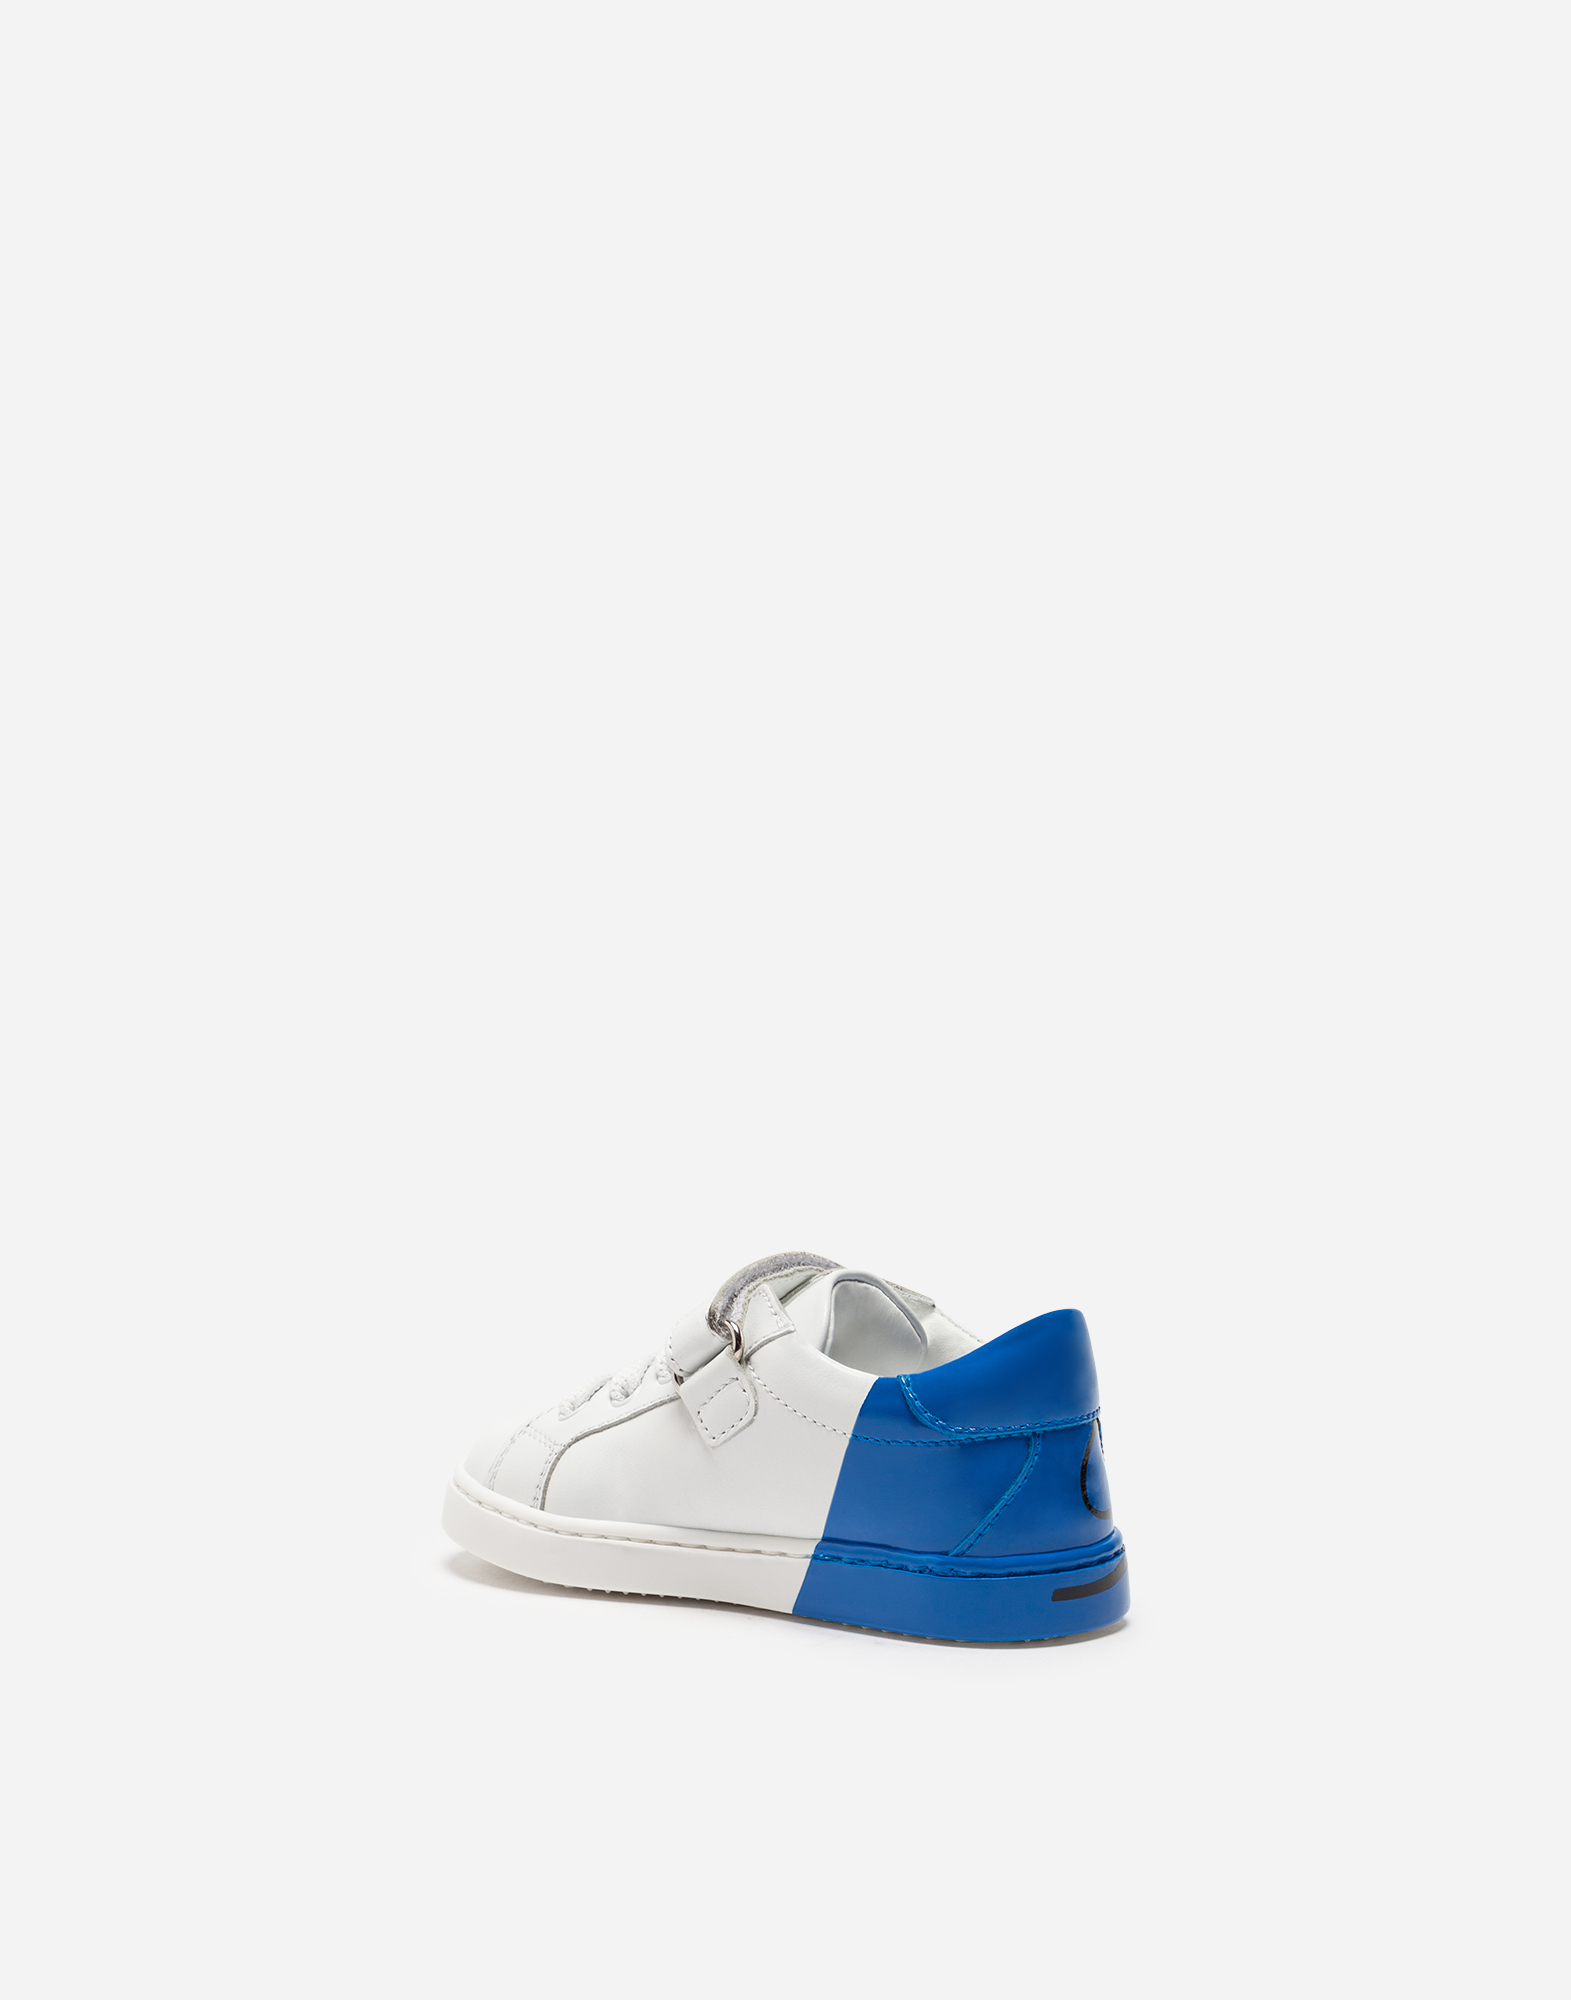 Dolce&Gabbana KID'S FIRST STEPS LEATHER SNEAKERS